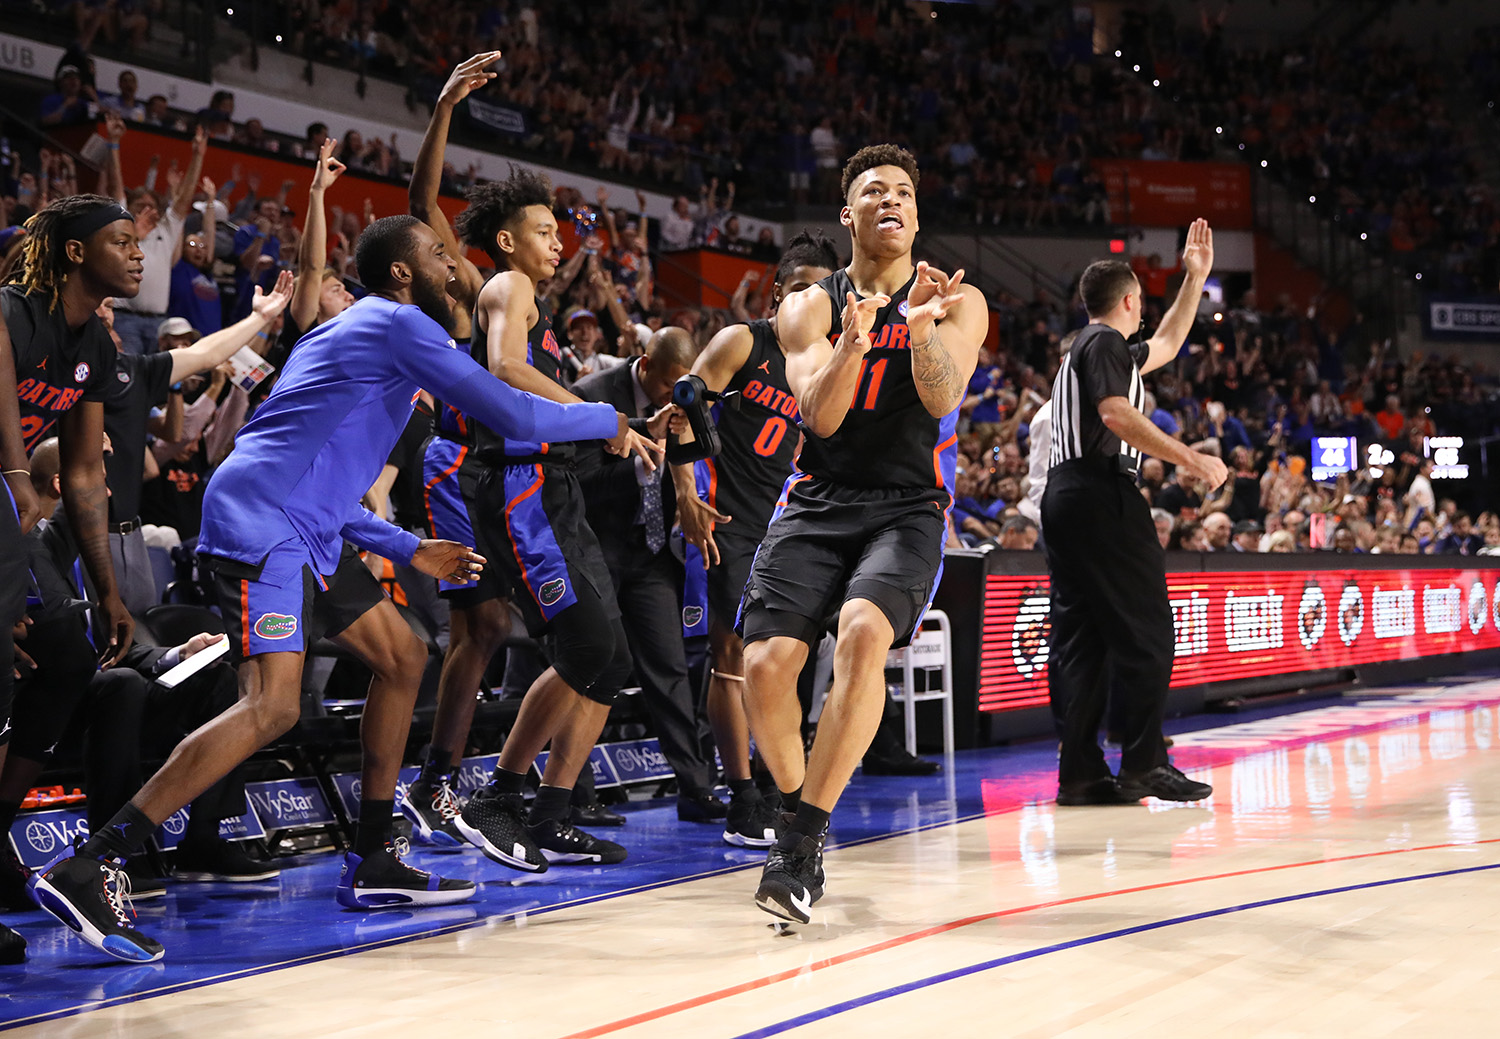 Florida forward Keyontae Johnson (11) celebrates after making a three point shot against Auburn during the second half of an NCAA college basketball game Saturday, Jan. 18, 2020, in Gainesville, Fla. (AP Photo/Matt Stamey)